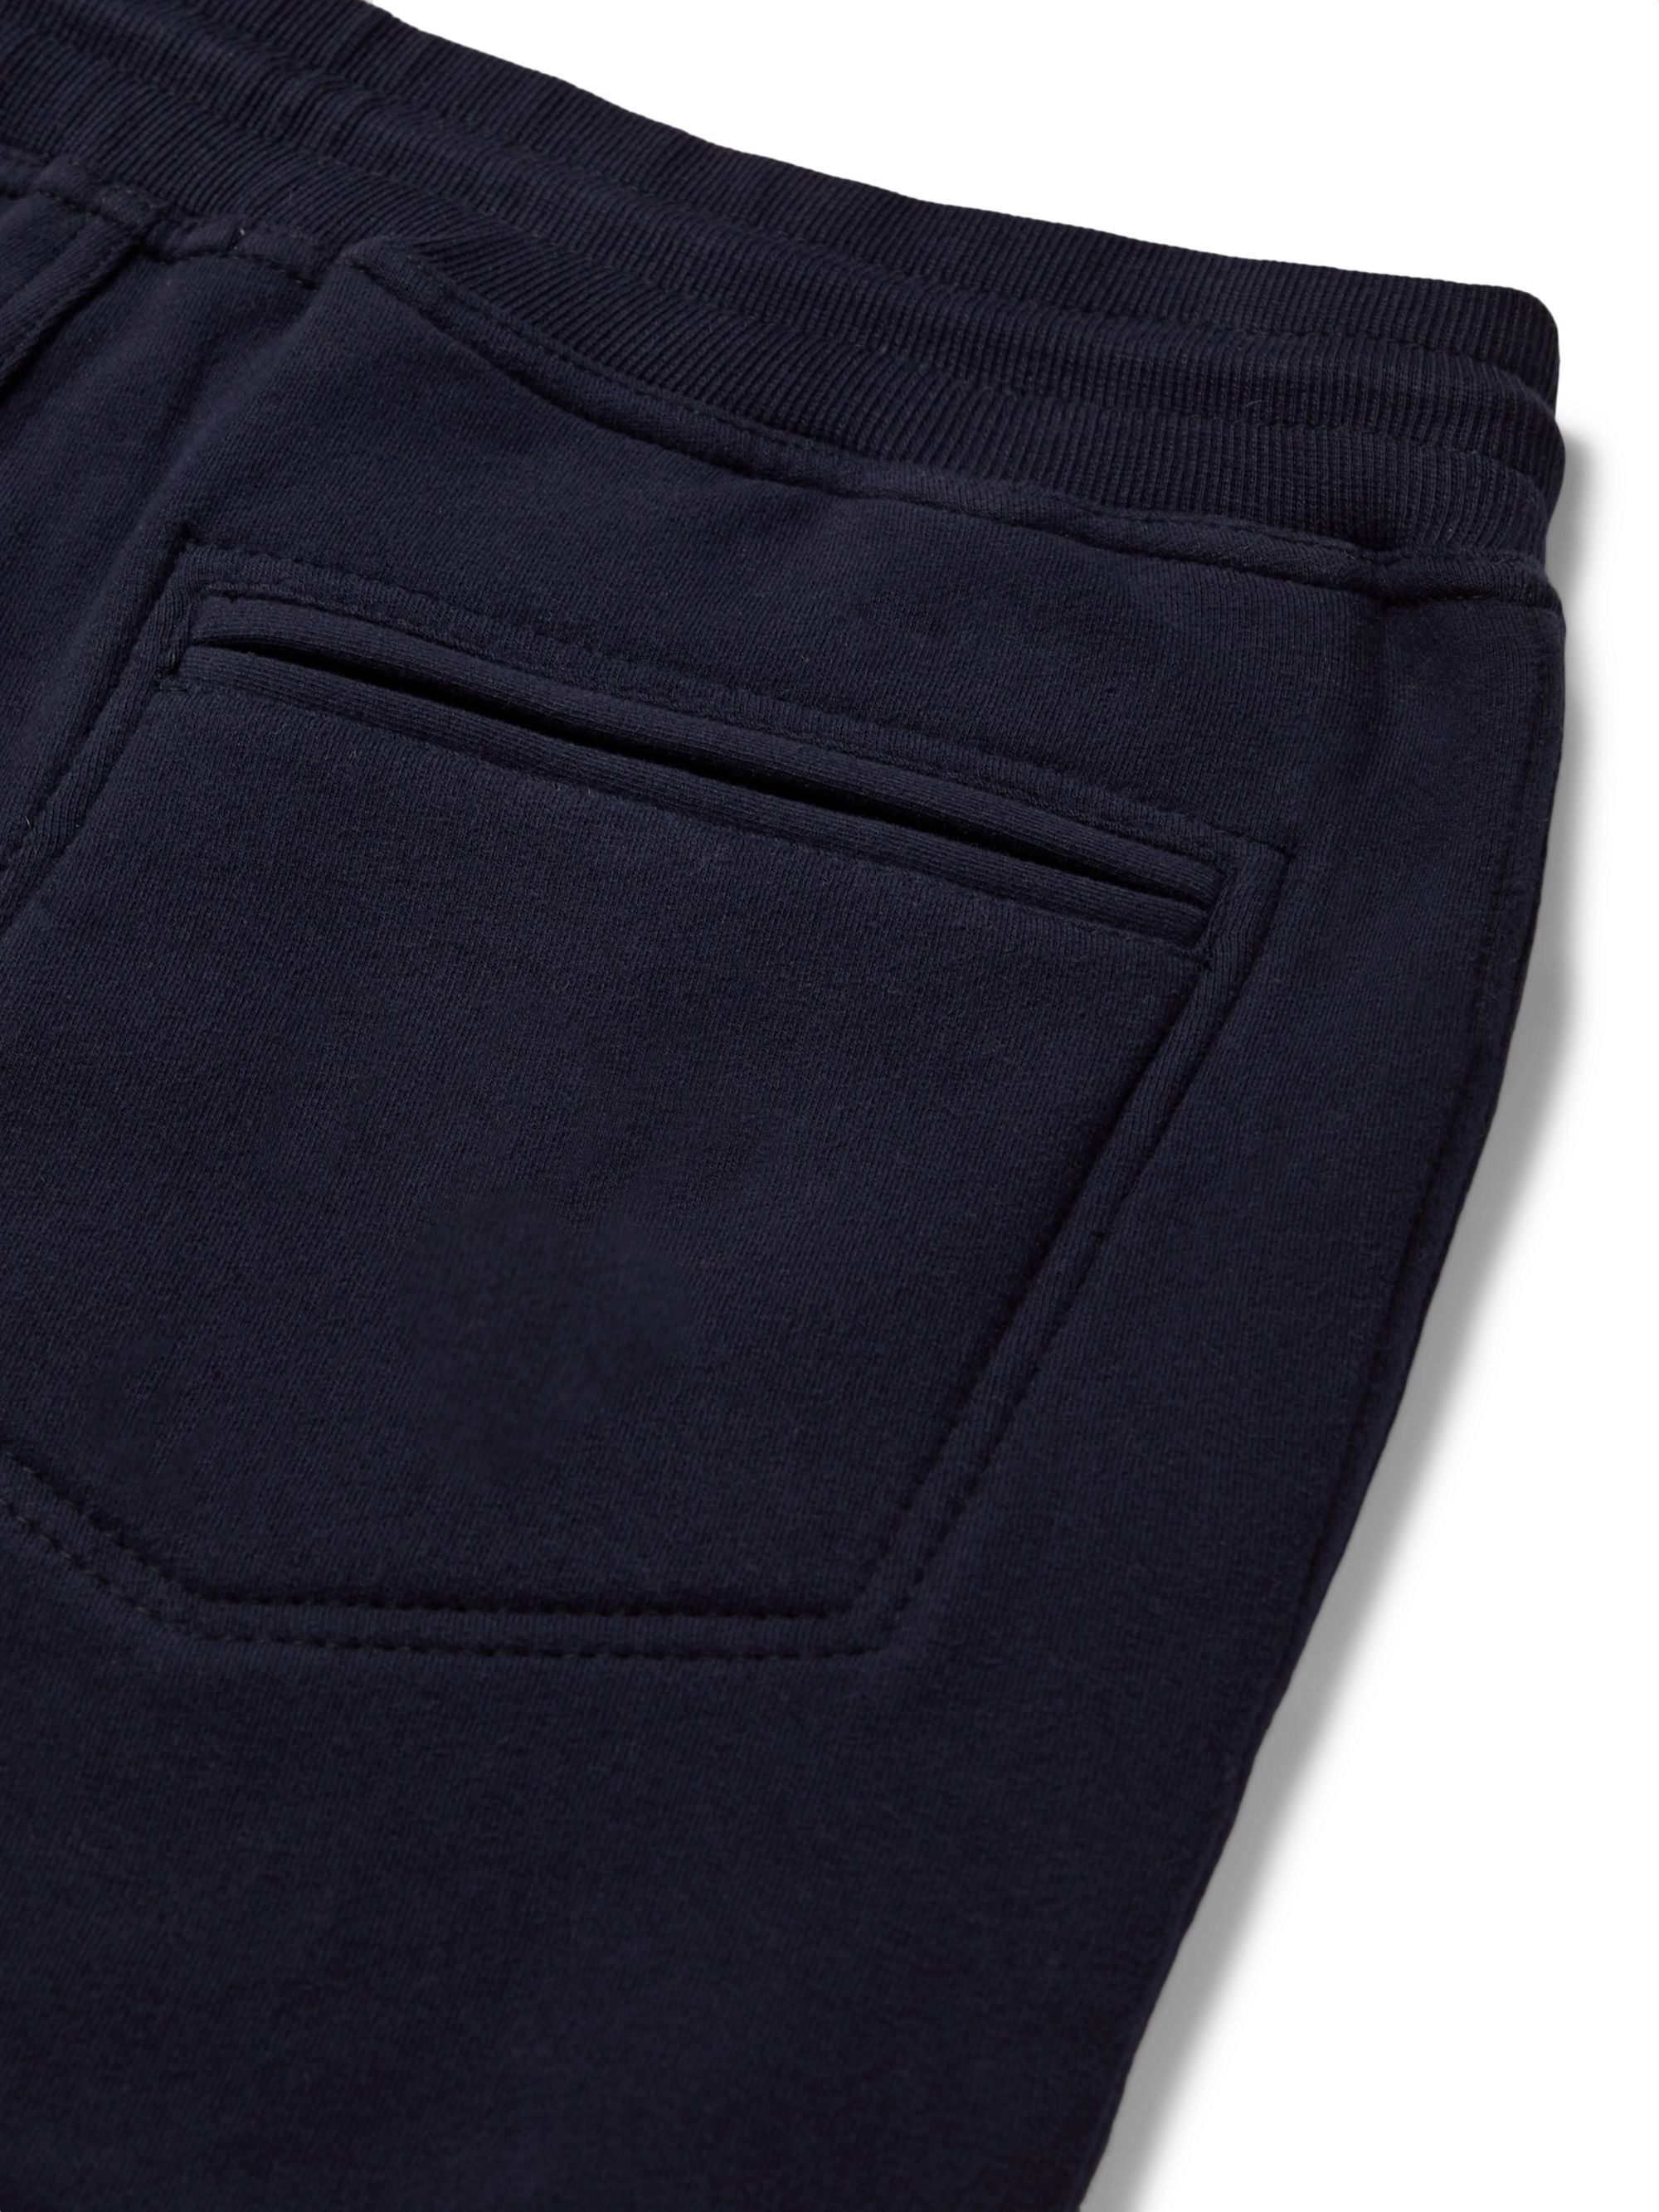 Brunello Cucinelli Slim-Fit Tapered Fleece-Back Stretch-Cotton Jersey Sweatpants